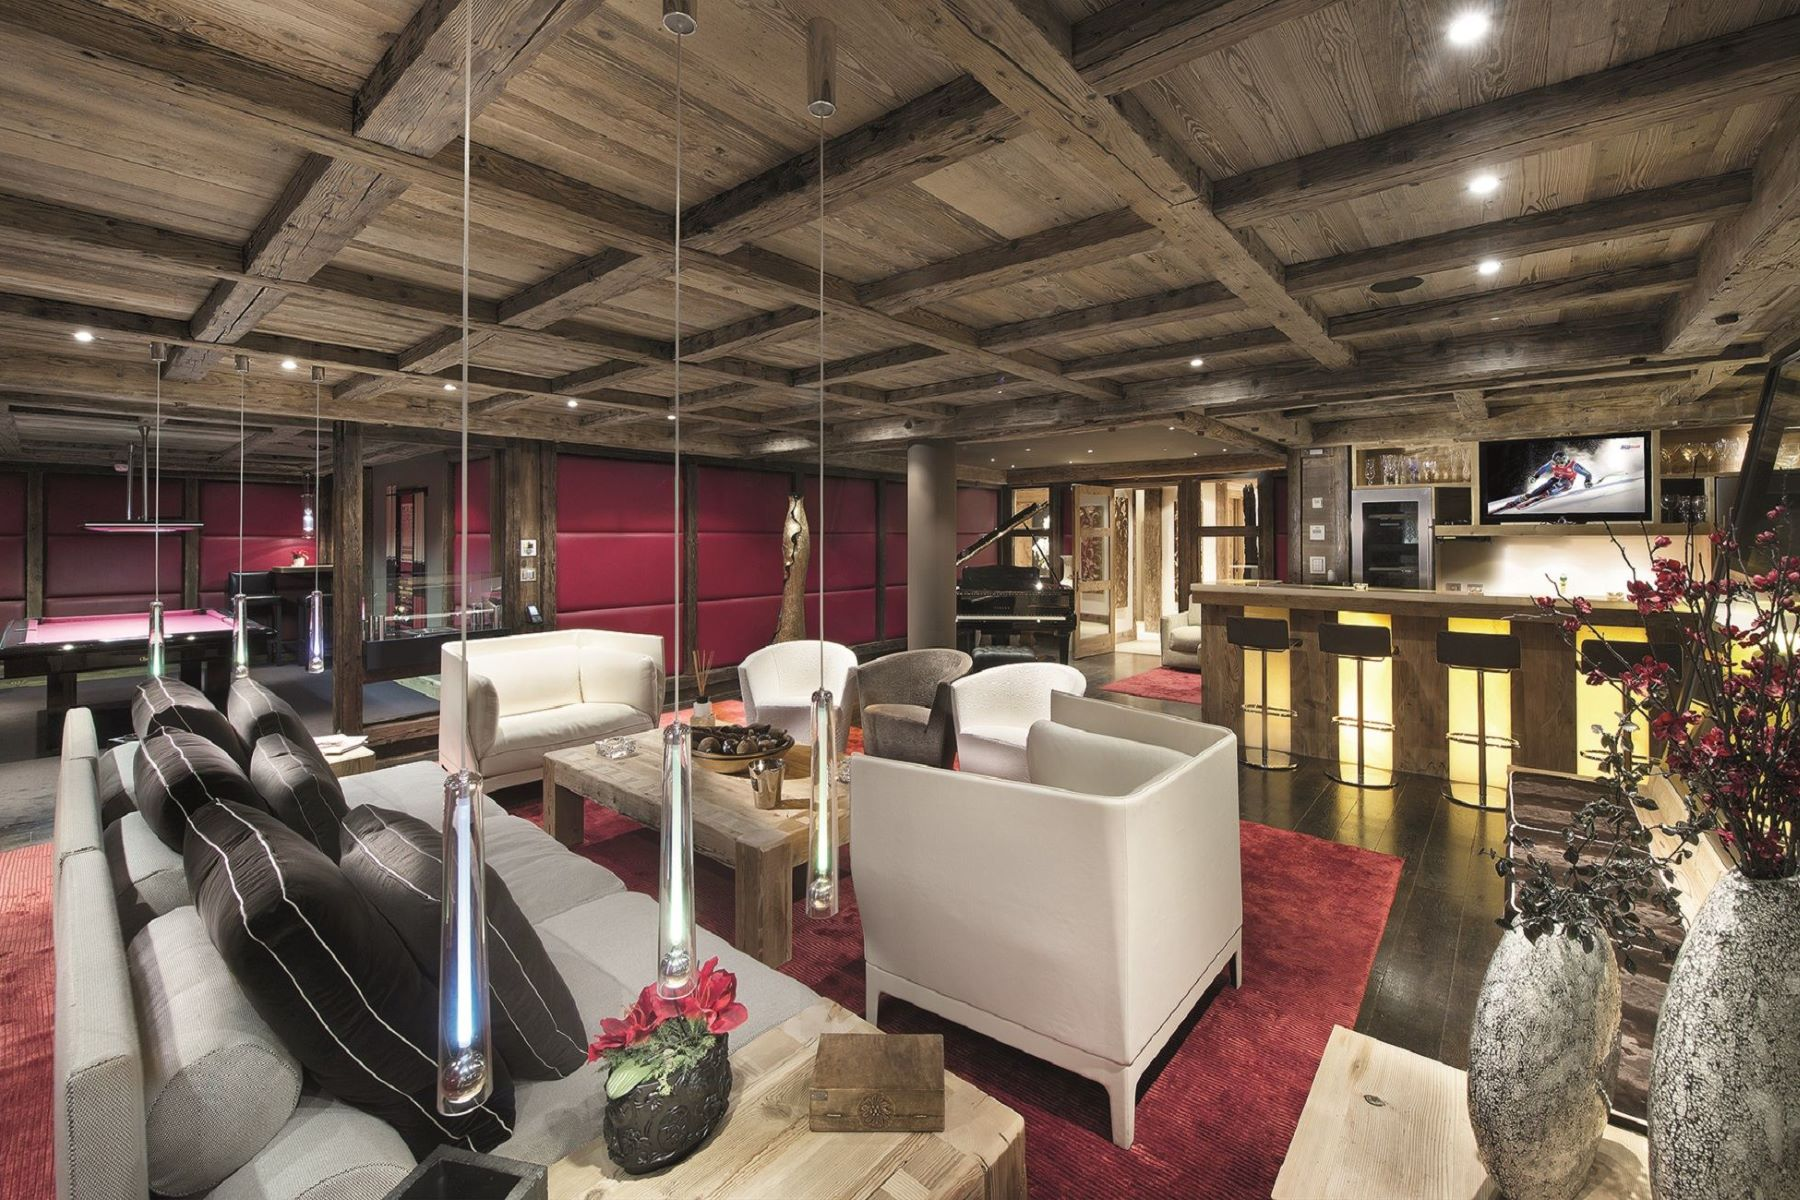 Additional photo for property listing at Luxury chalet with indoor pool for sale in the French Alps  Courchevel, Rhone-Alpes 73120 France